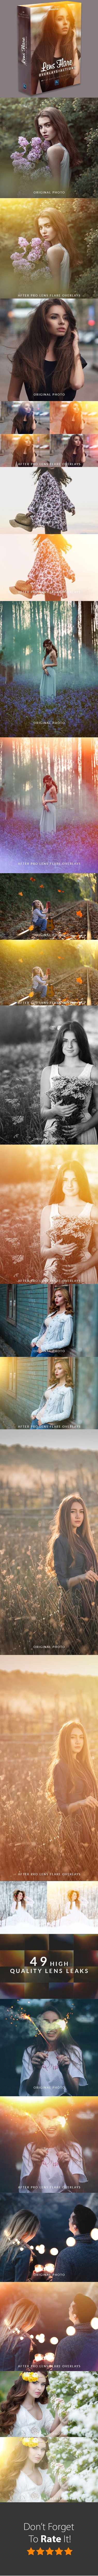 Pro Lens Flare Photoshop Overlays - Photo Effects Actions